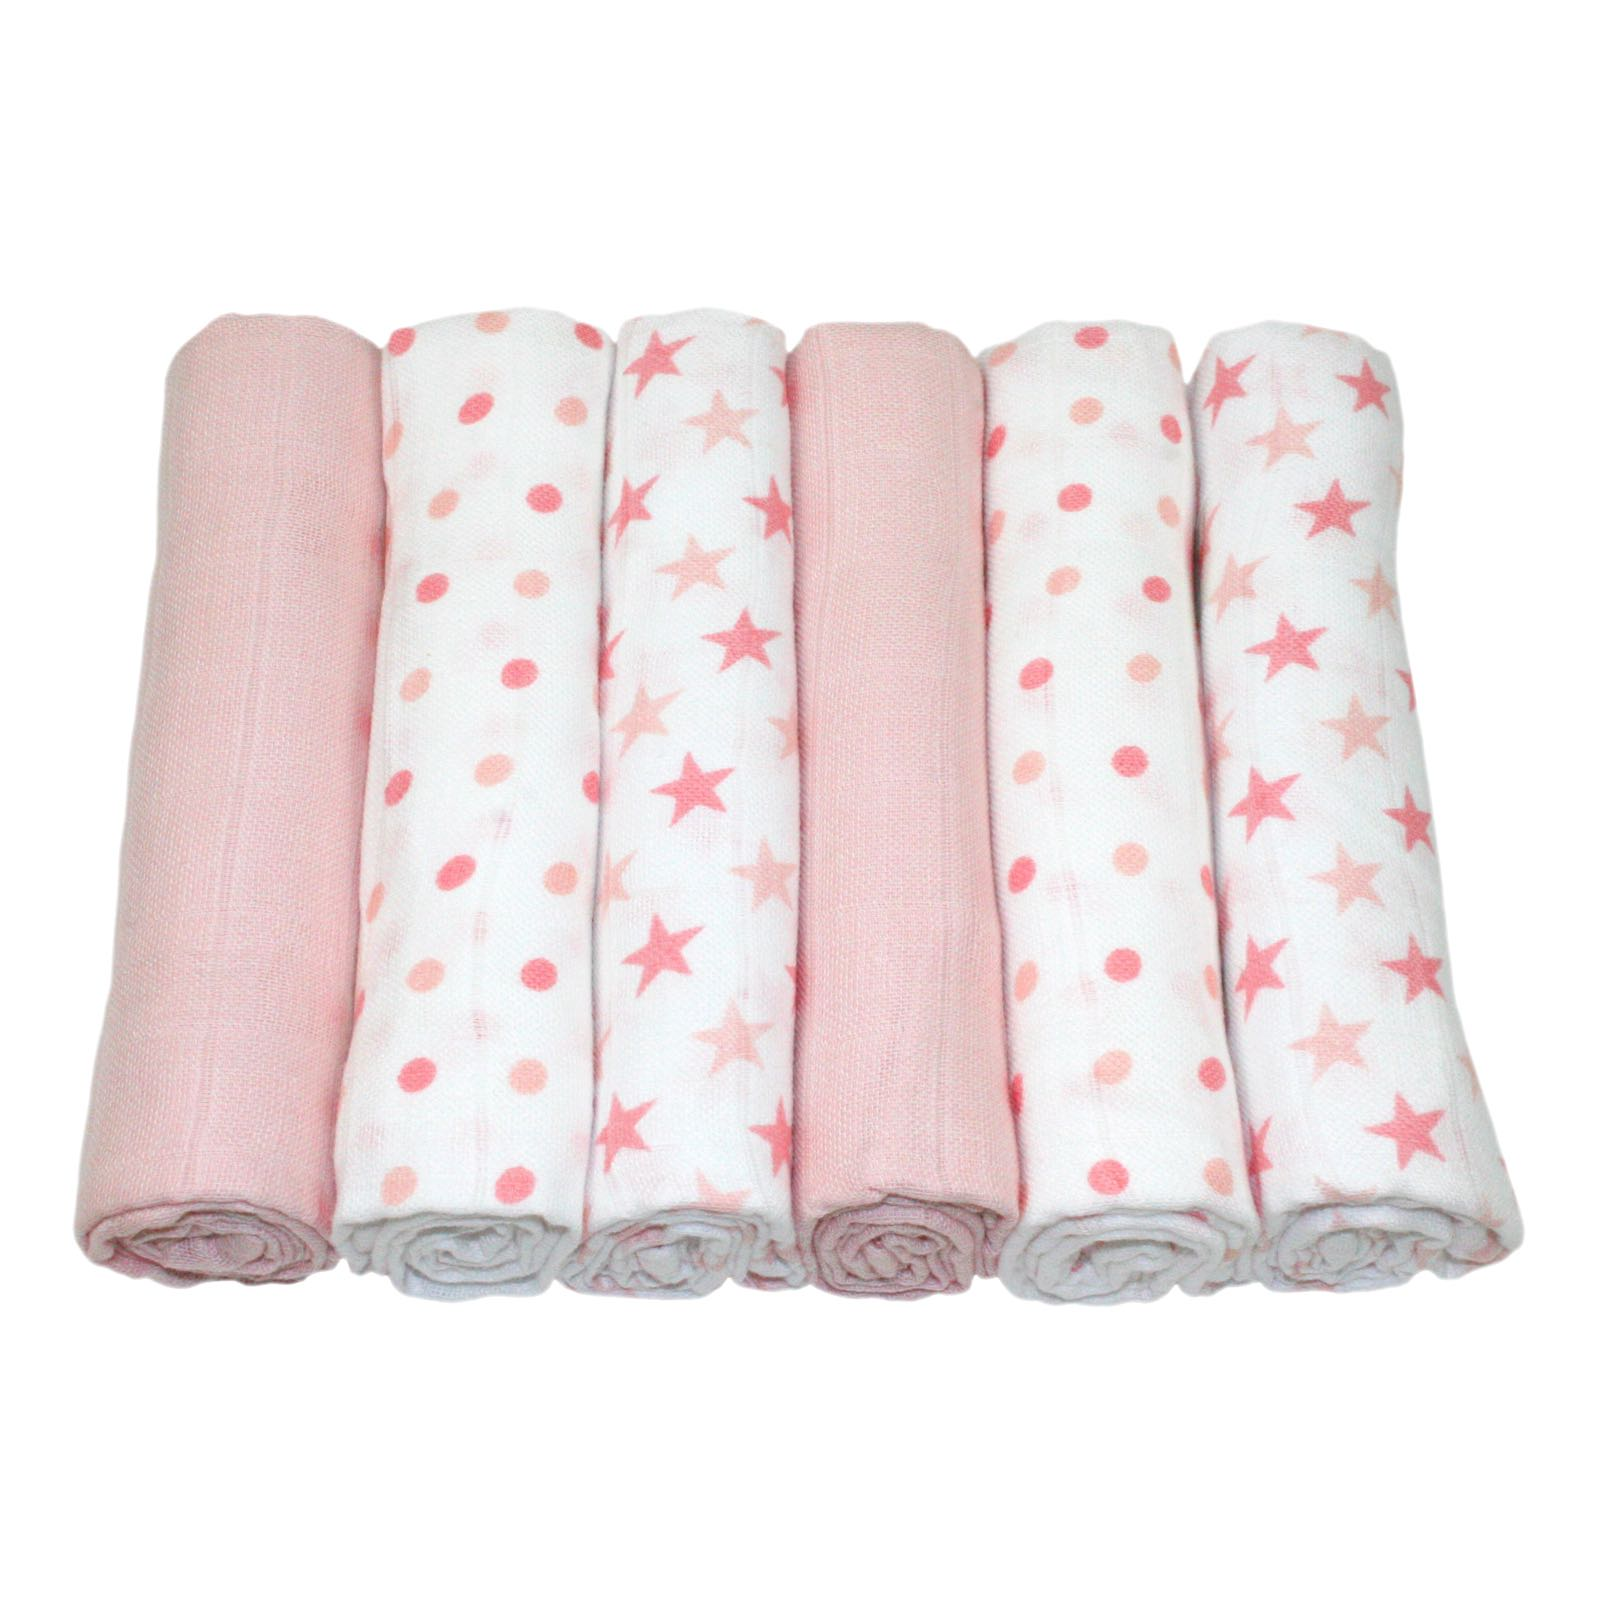 MuslinZ - 6 pack muslin squares - Pink Star combo